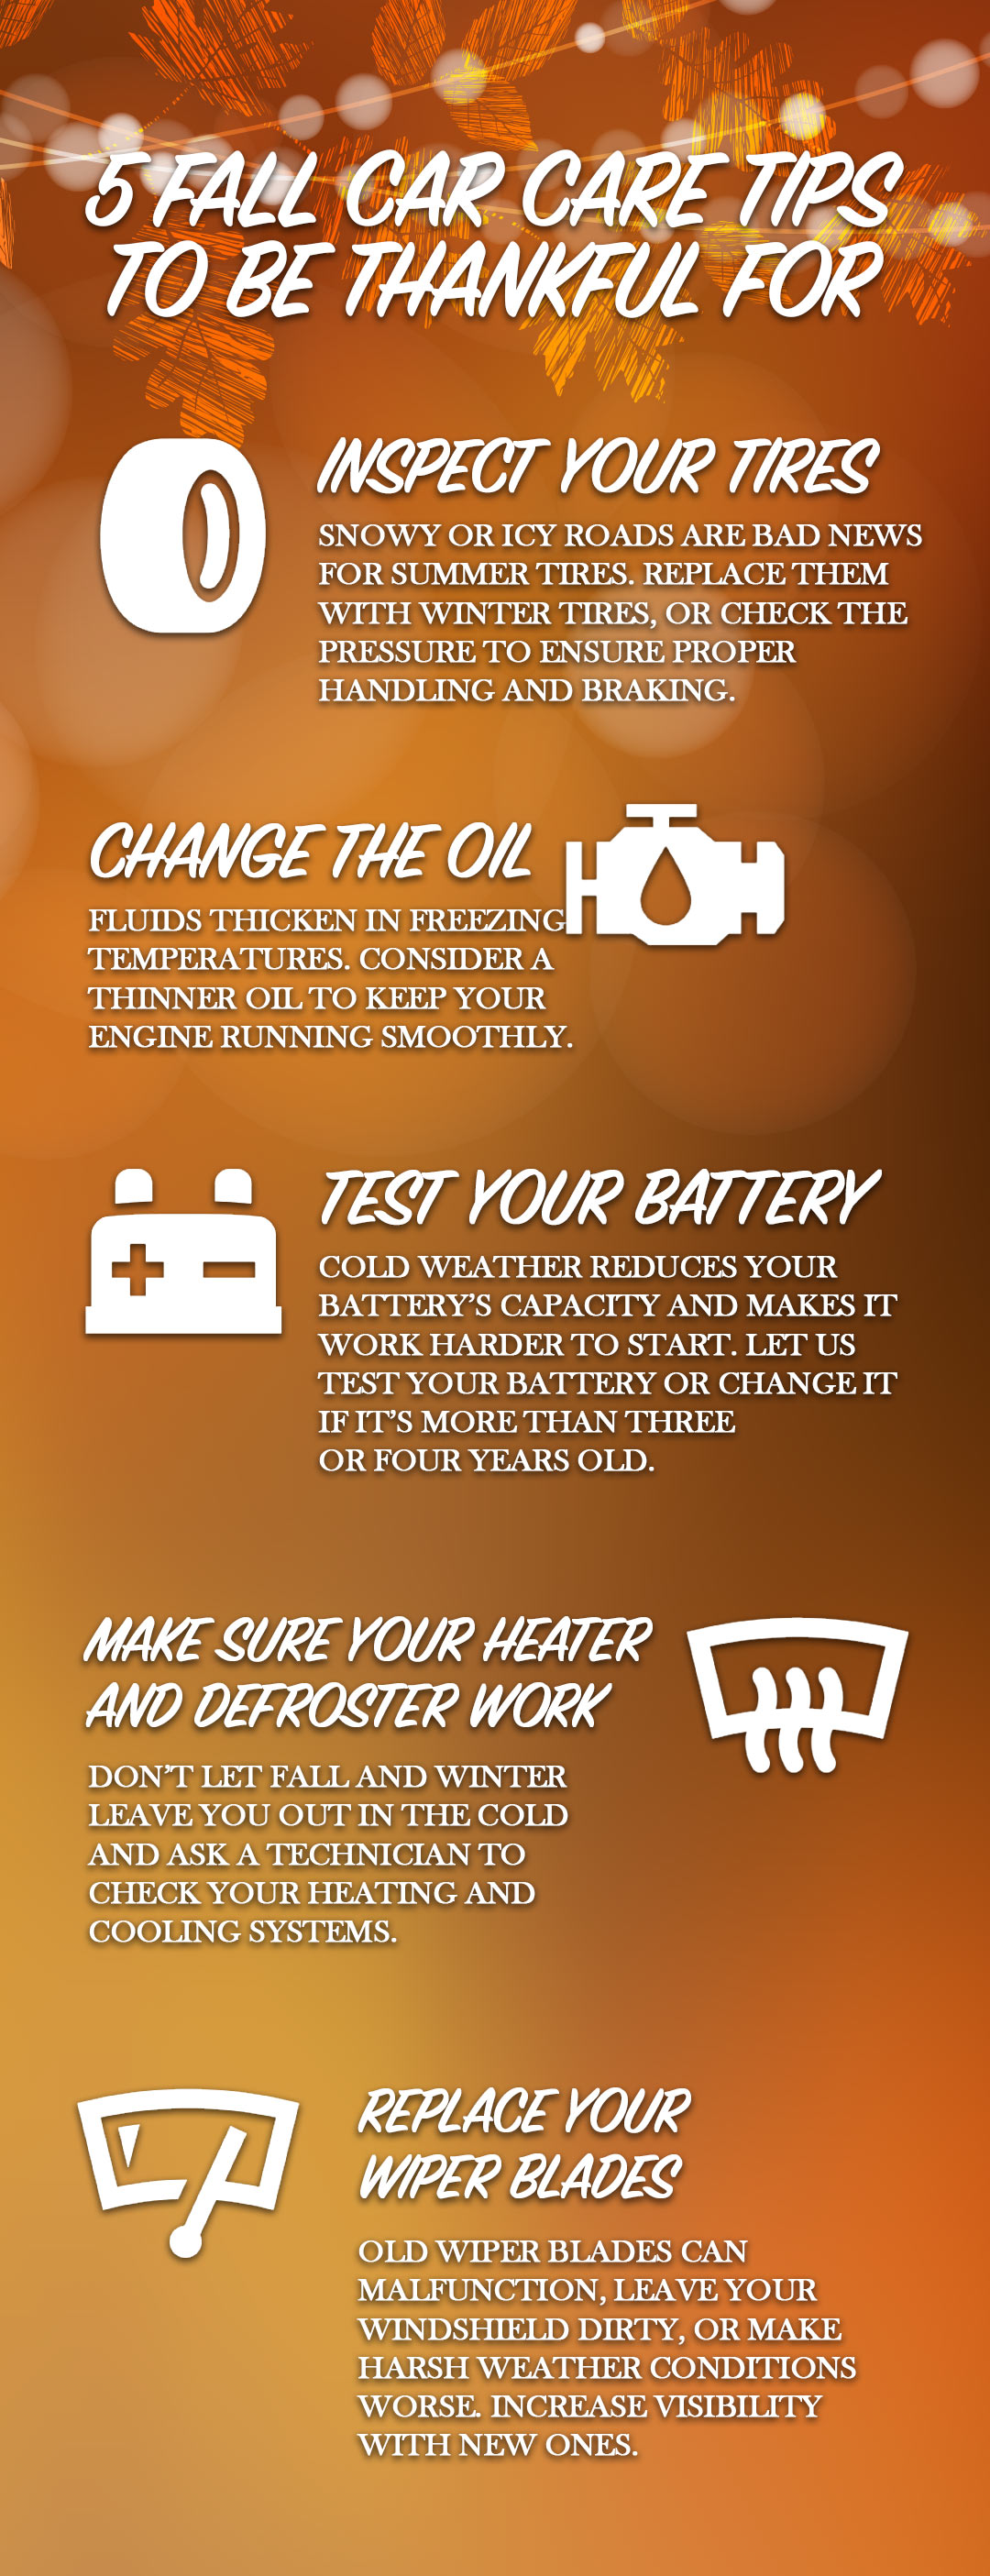 An infographic outlining five five fall car care tips